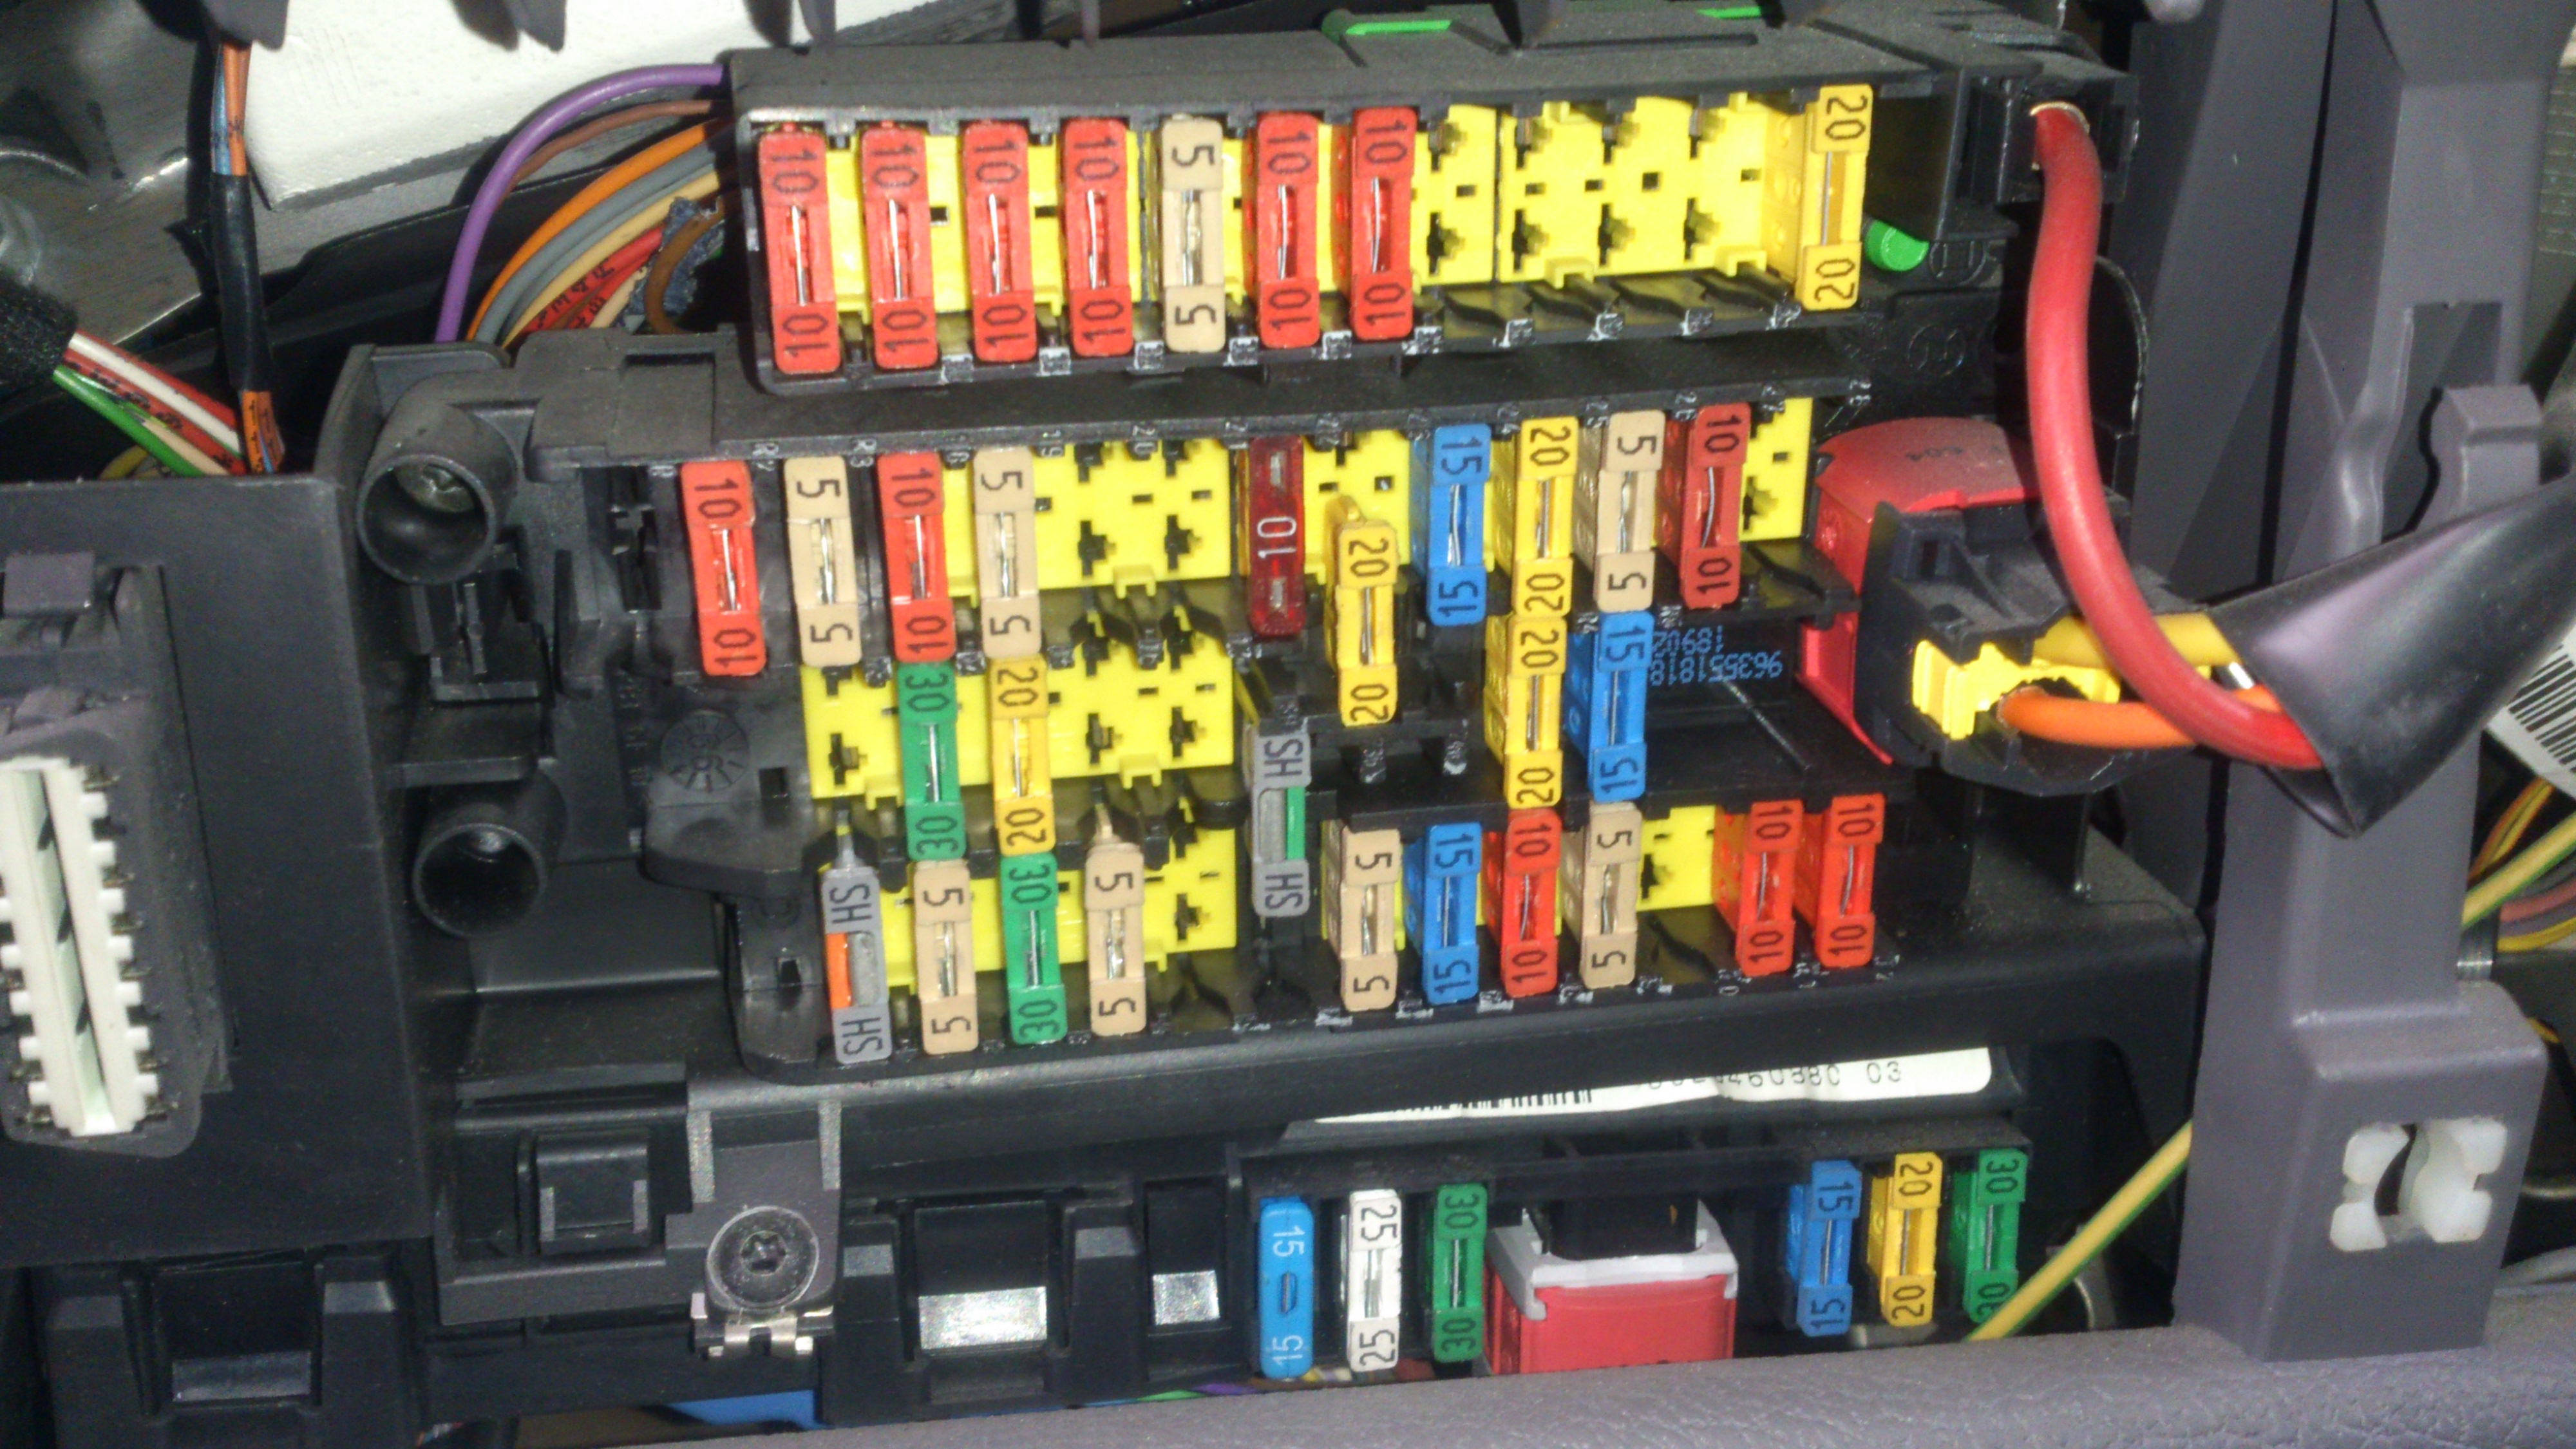 peugeot 207 wiring diagram download with Sujet100092 on Peugeot Expert Fuse Box further Blinkerswitch likewise Diagrama Caja De Fusibles further Volvo Mon Rail Fuel System as well Hand UokNKZhSWPECA.